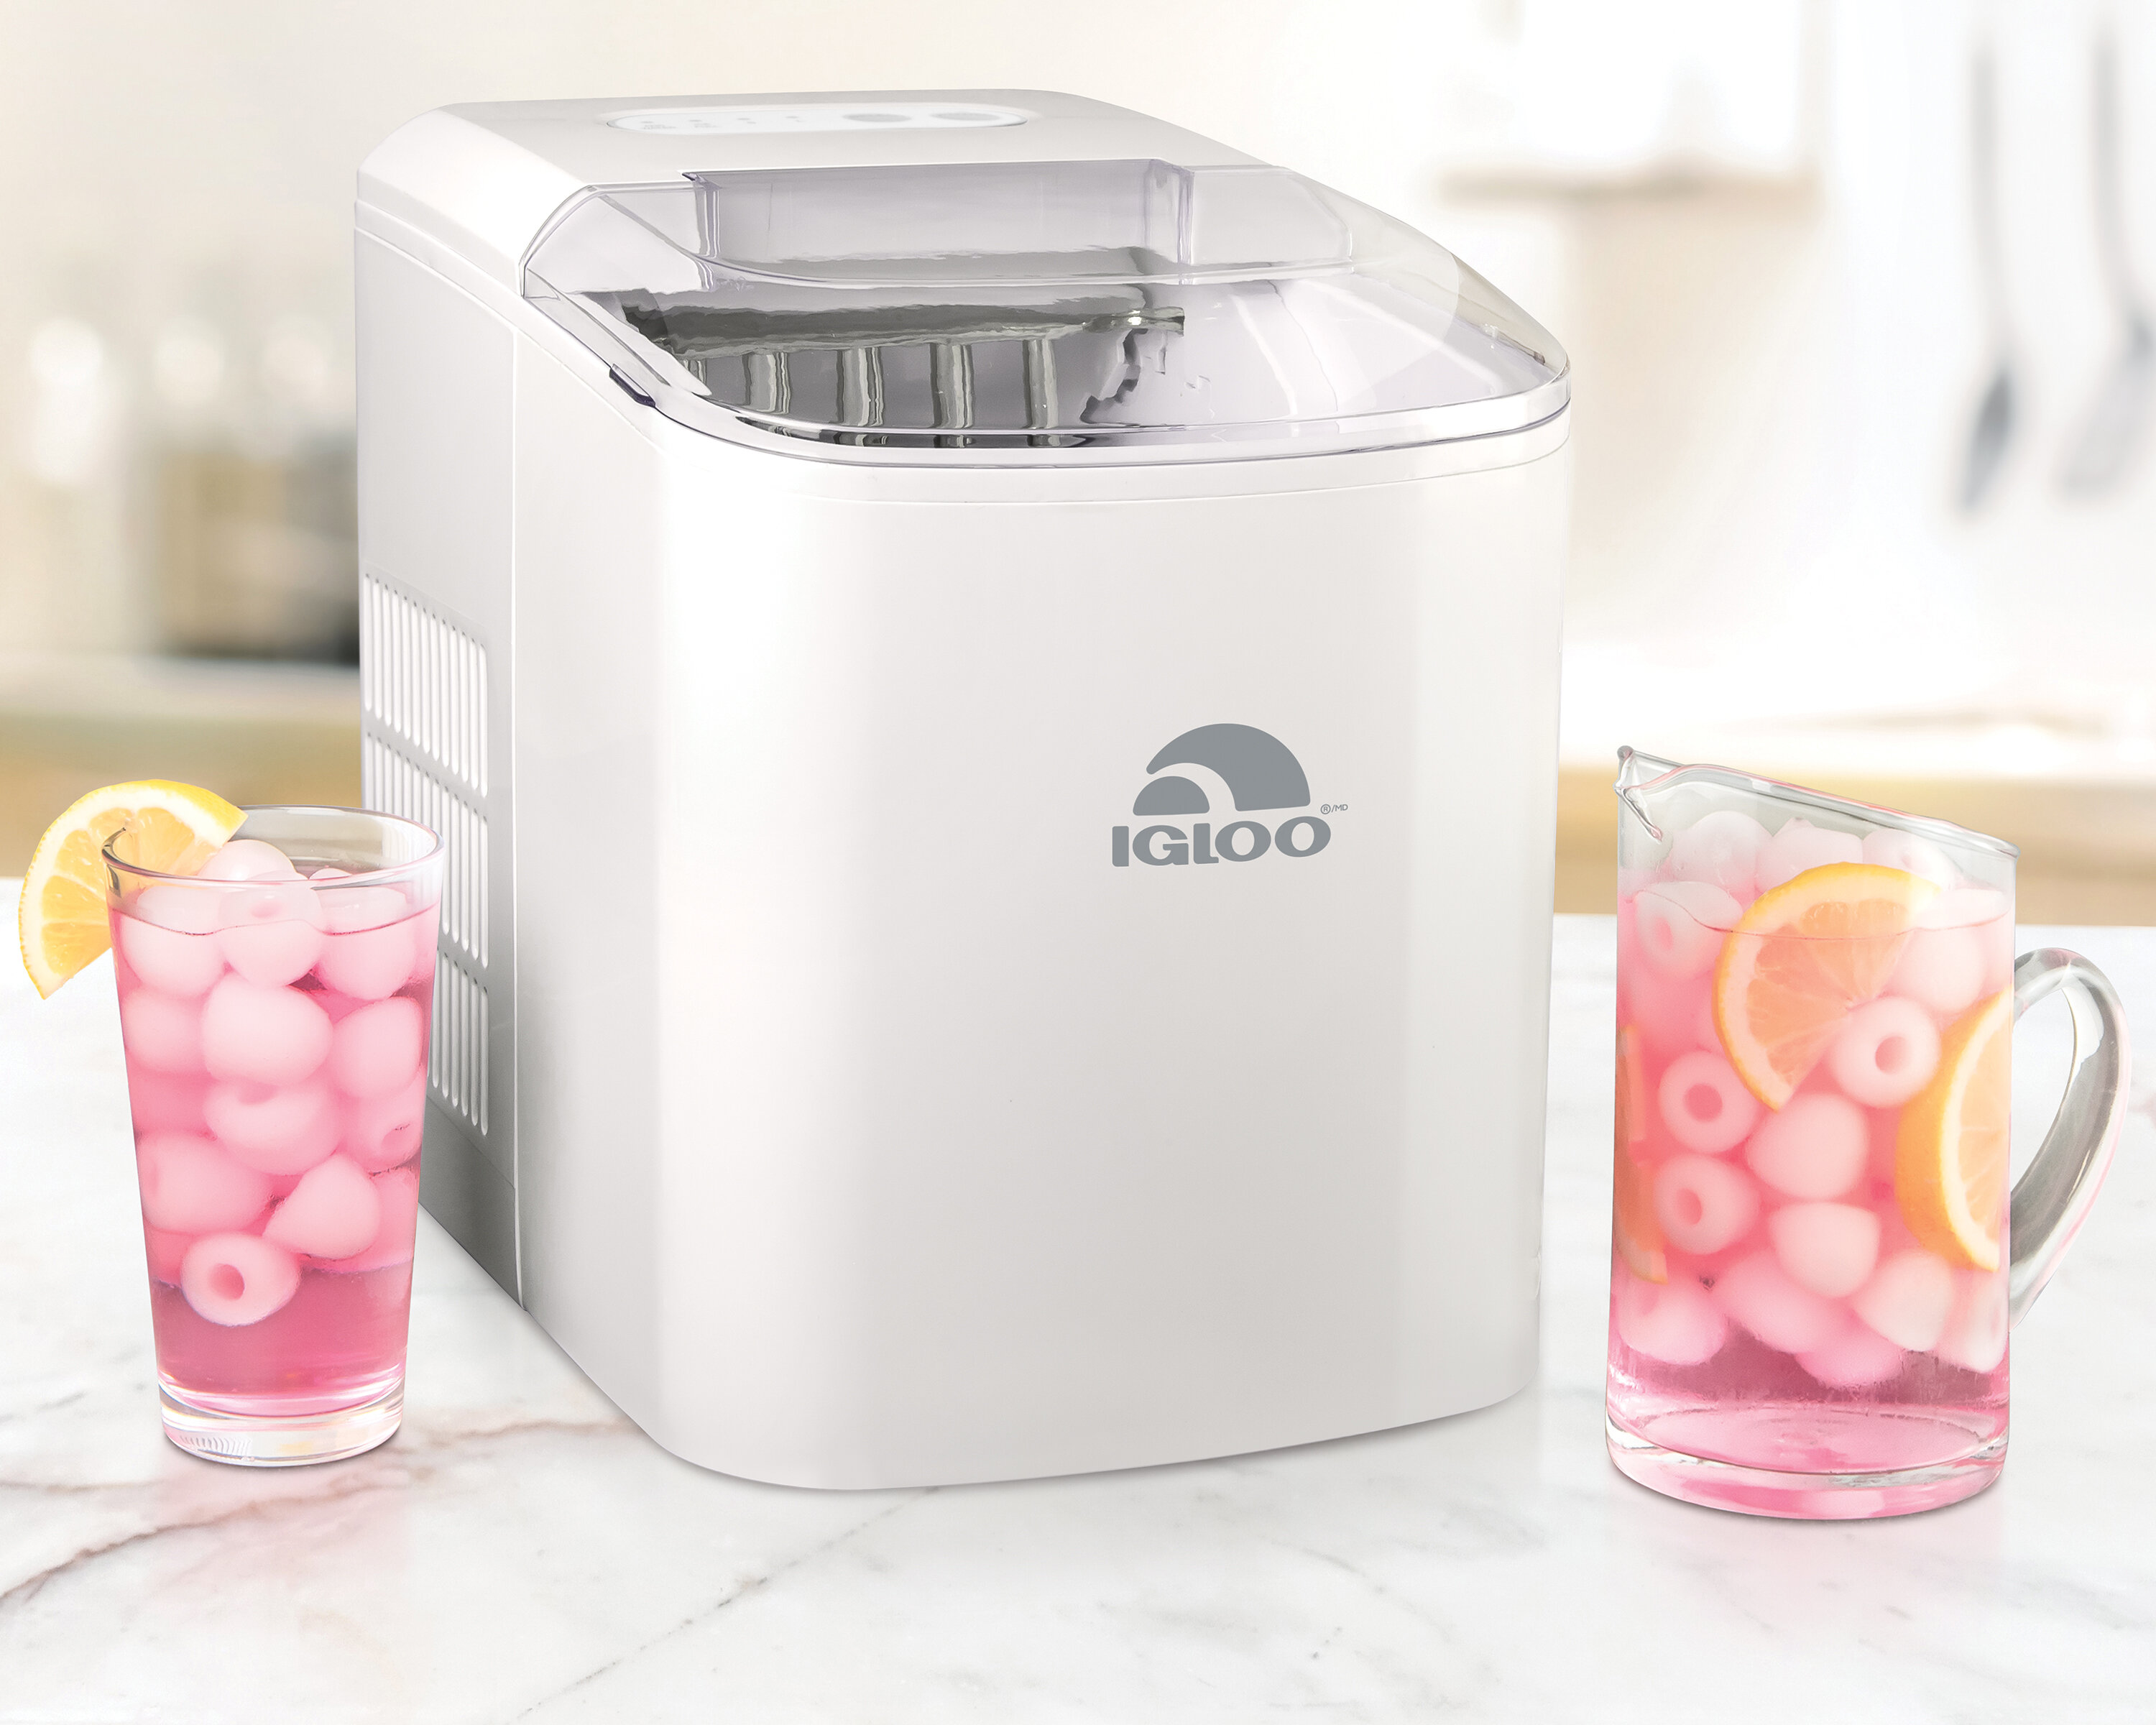 Igloo 26 Pound Automatic Portable Countertop Ice Maker Machine White Reviews Wayfair